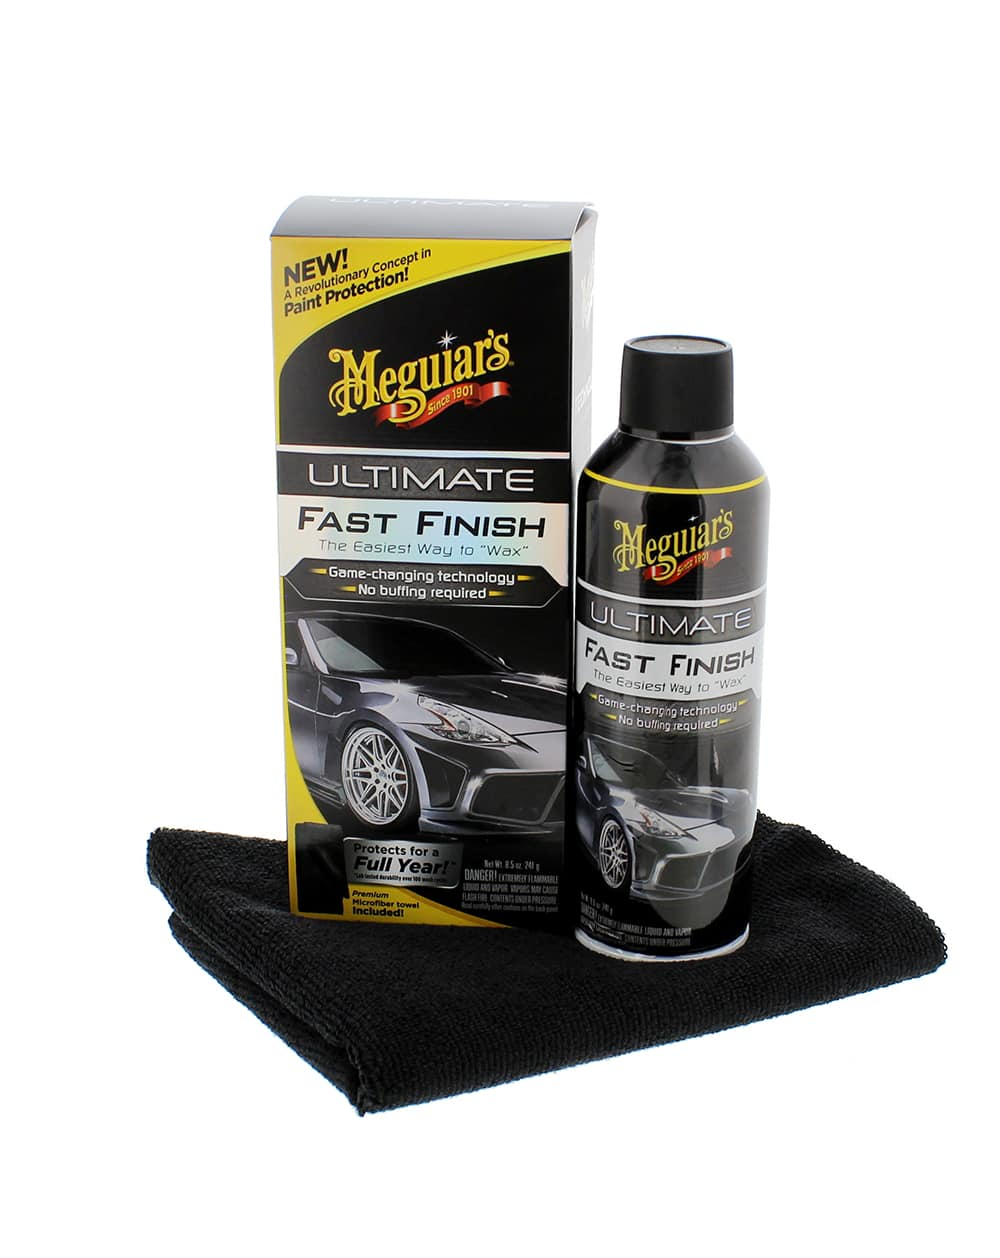 Meguiars G18309 Ultimate Fast Finish $9